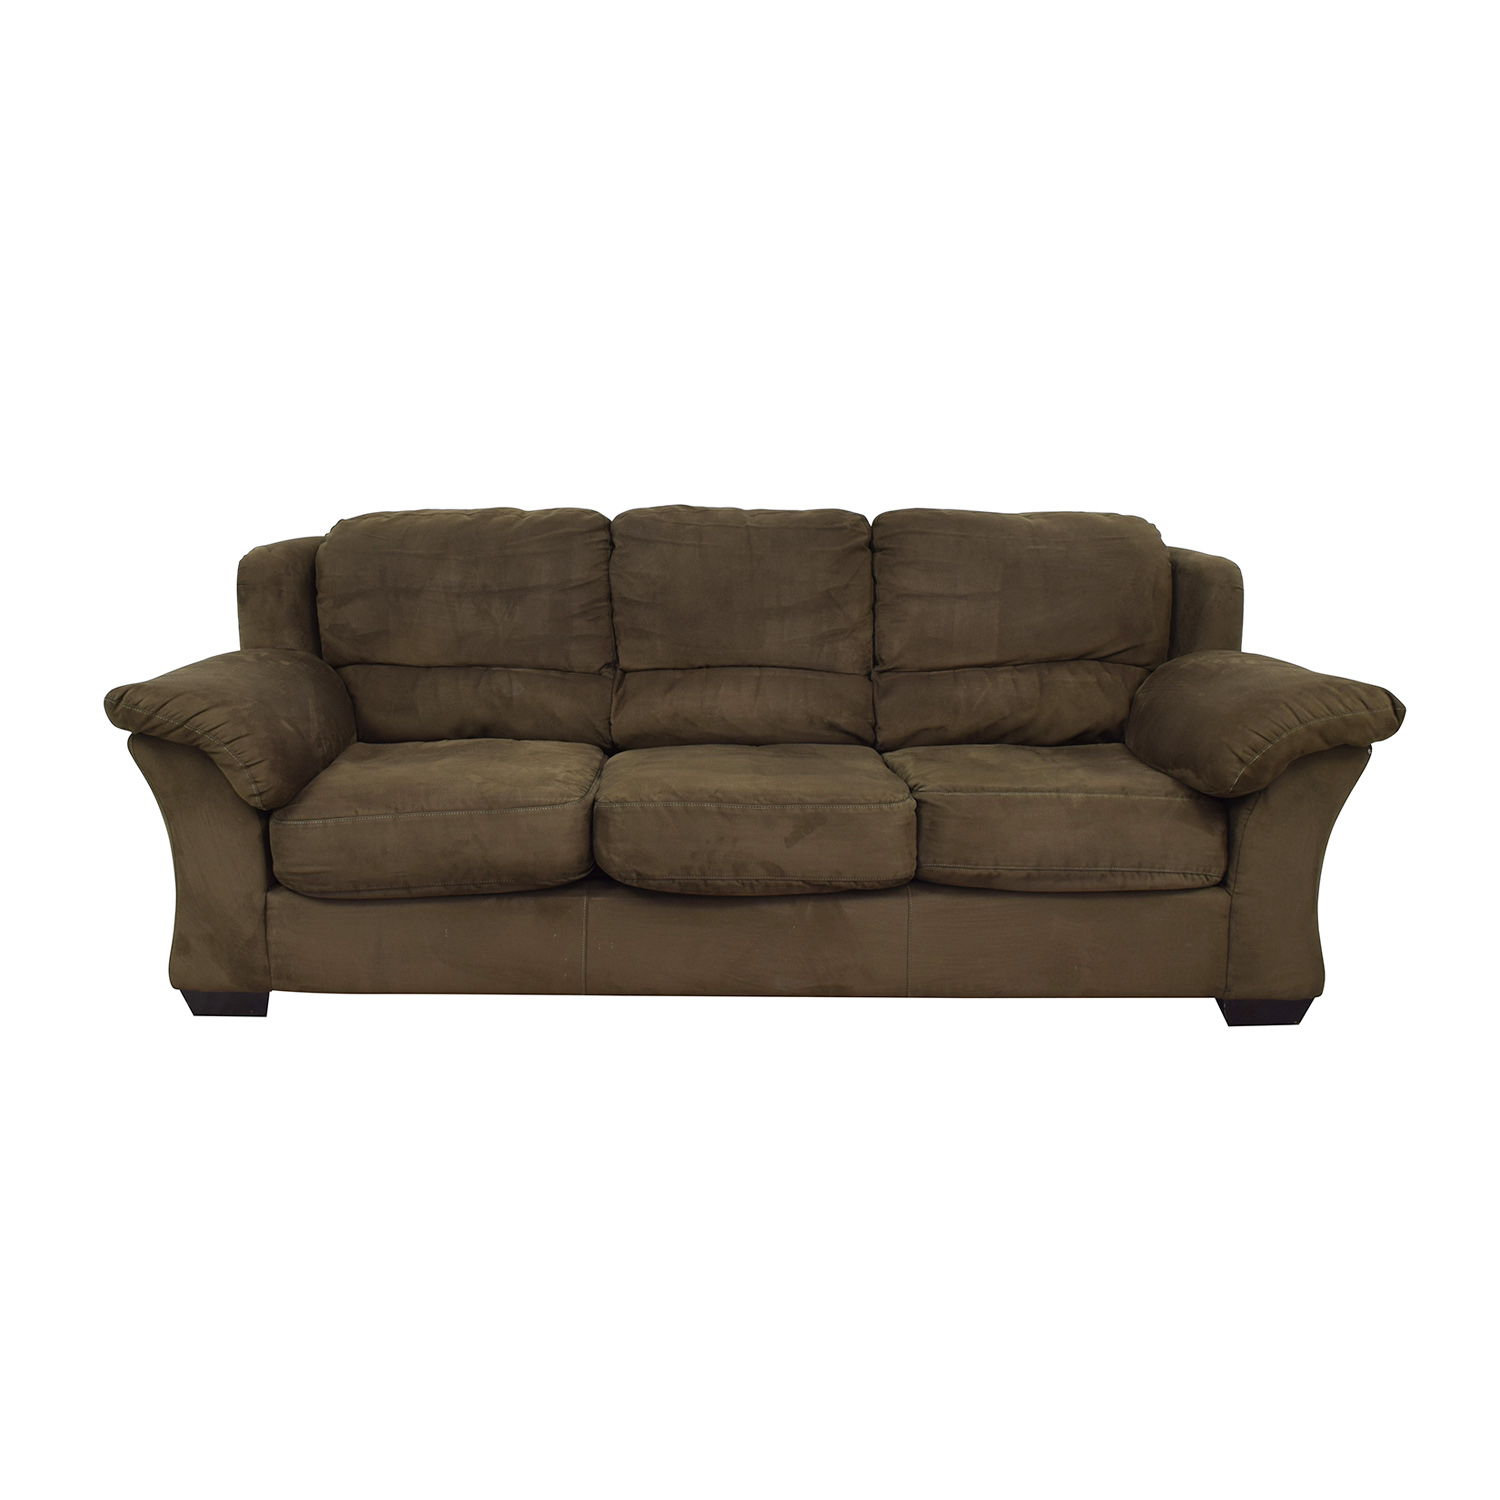 HM Richards Furniture Dark Green Couch / Sofas